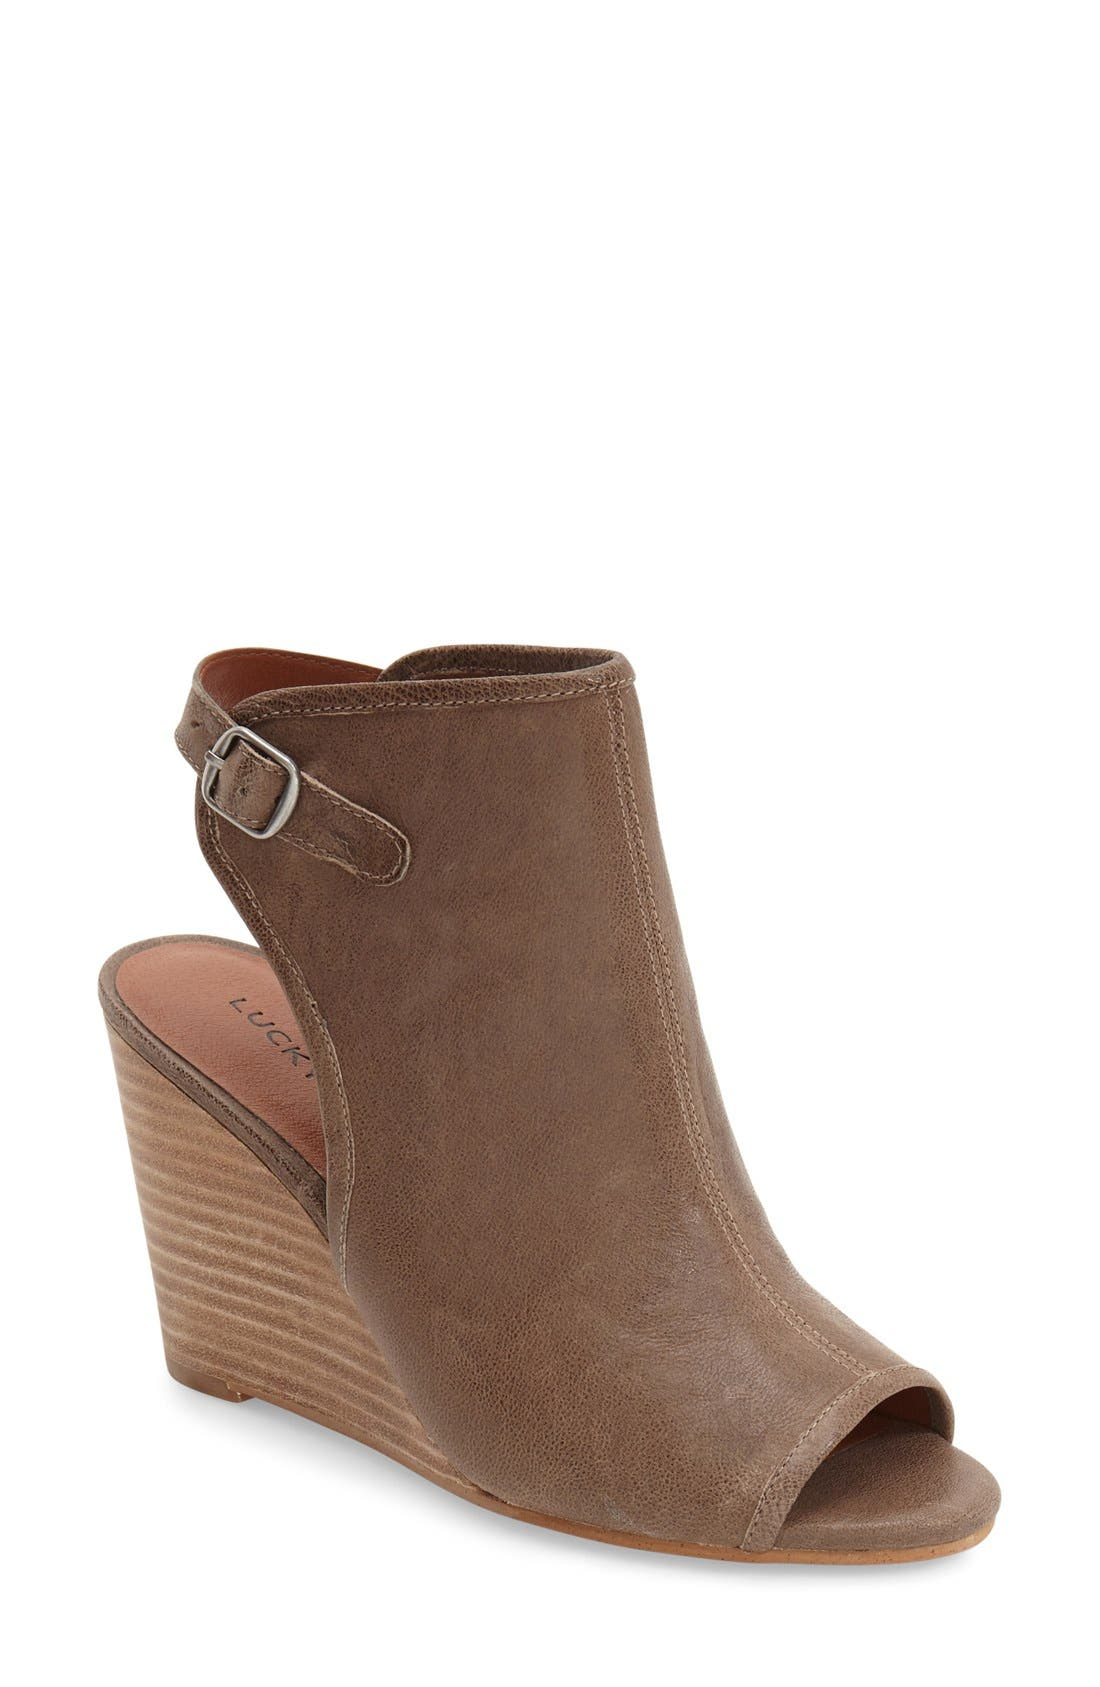 Main Image - Lucky Brand 'Risza' Open Toe Wedge Bootie (Women)